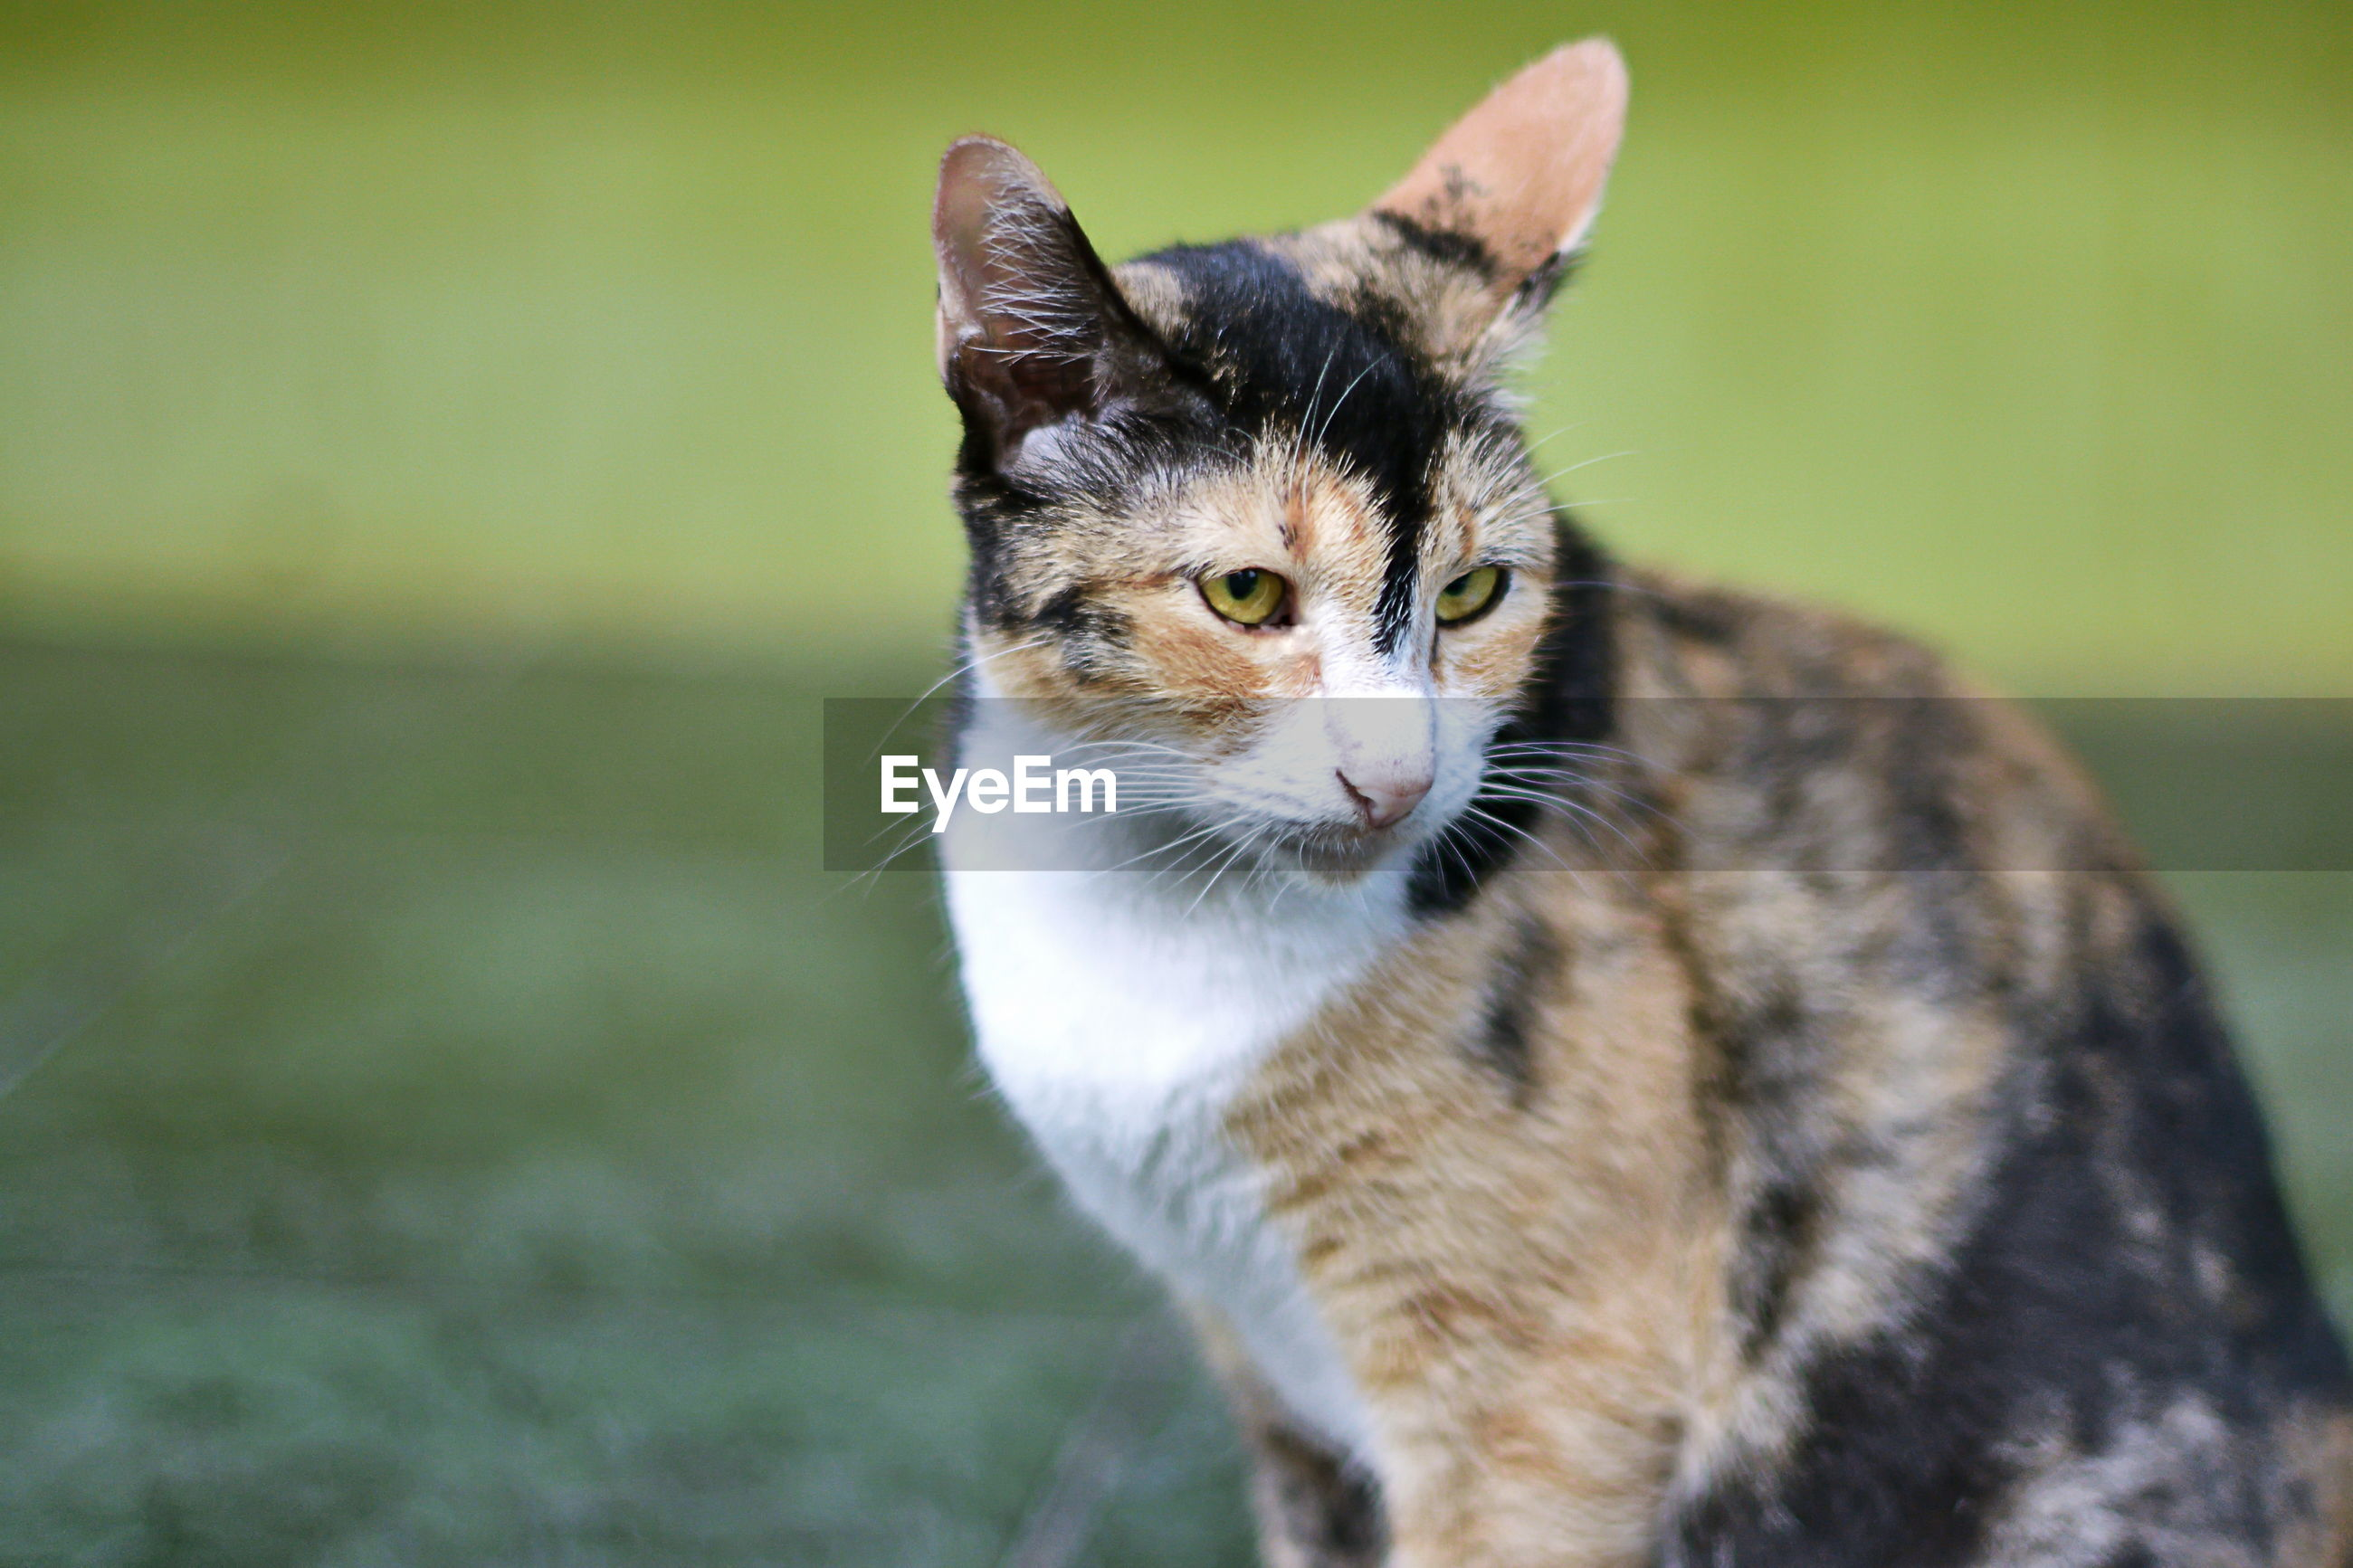 Close-up of cat sitting on field